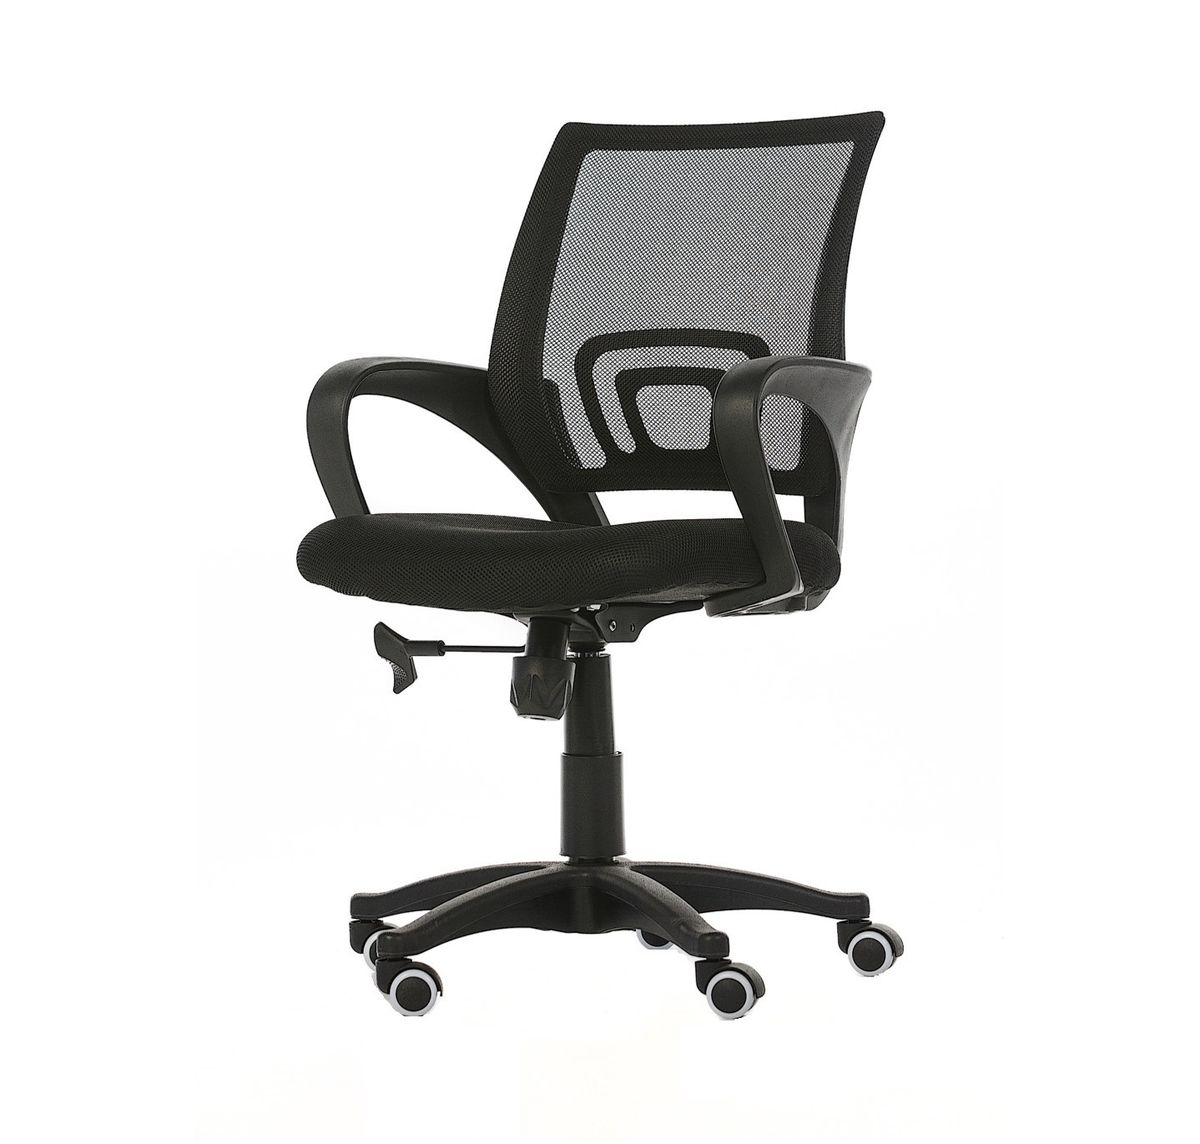 Swivel Mesh Executive Office Chair   Black. Loading Zoom